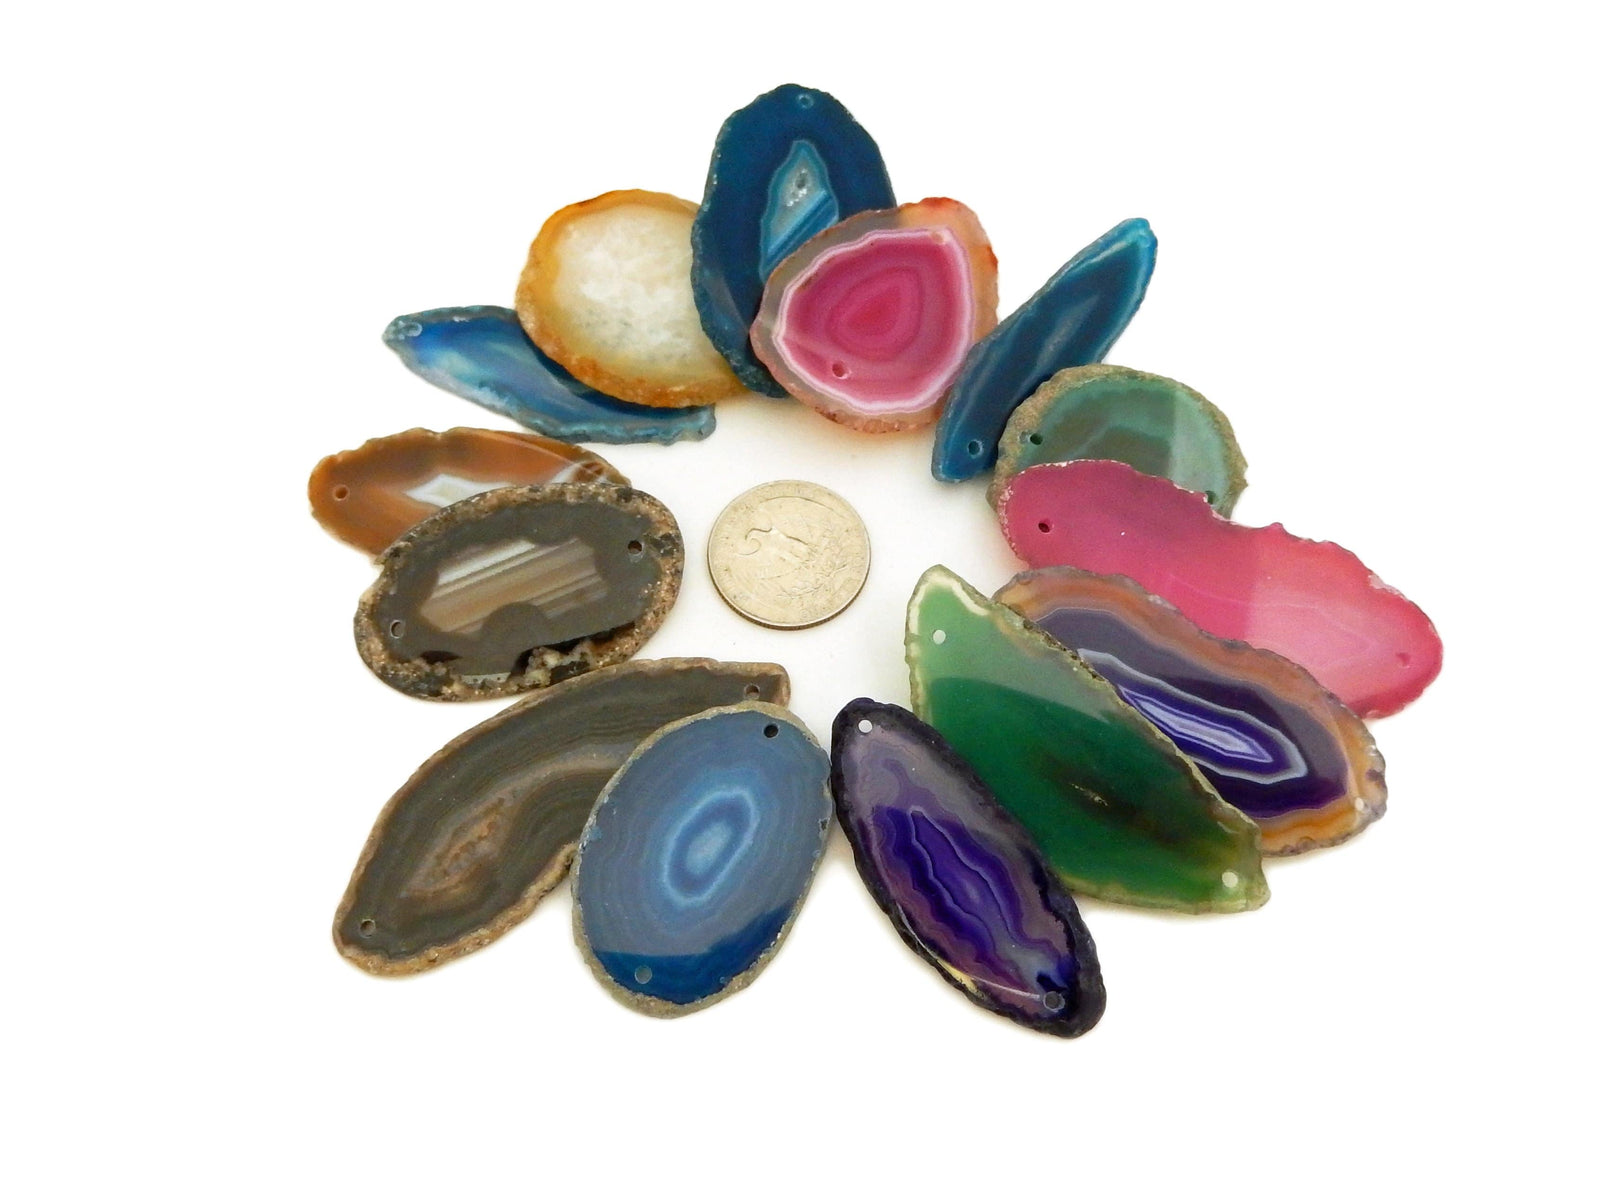 Agate Slices - Agate Slices Double Drilled - Crafts And Jewelry Supplies - Pendant Setting - Arts And Crafts - Choose Color And Qty (AGTDD)